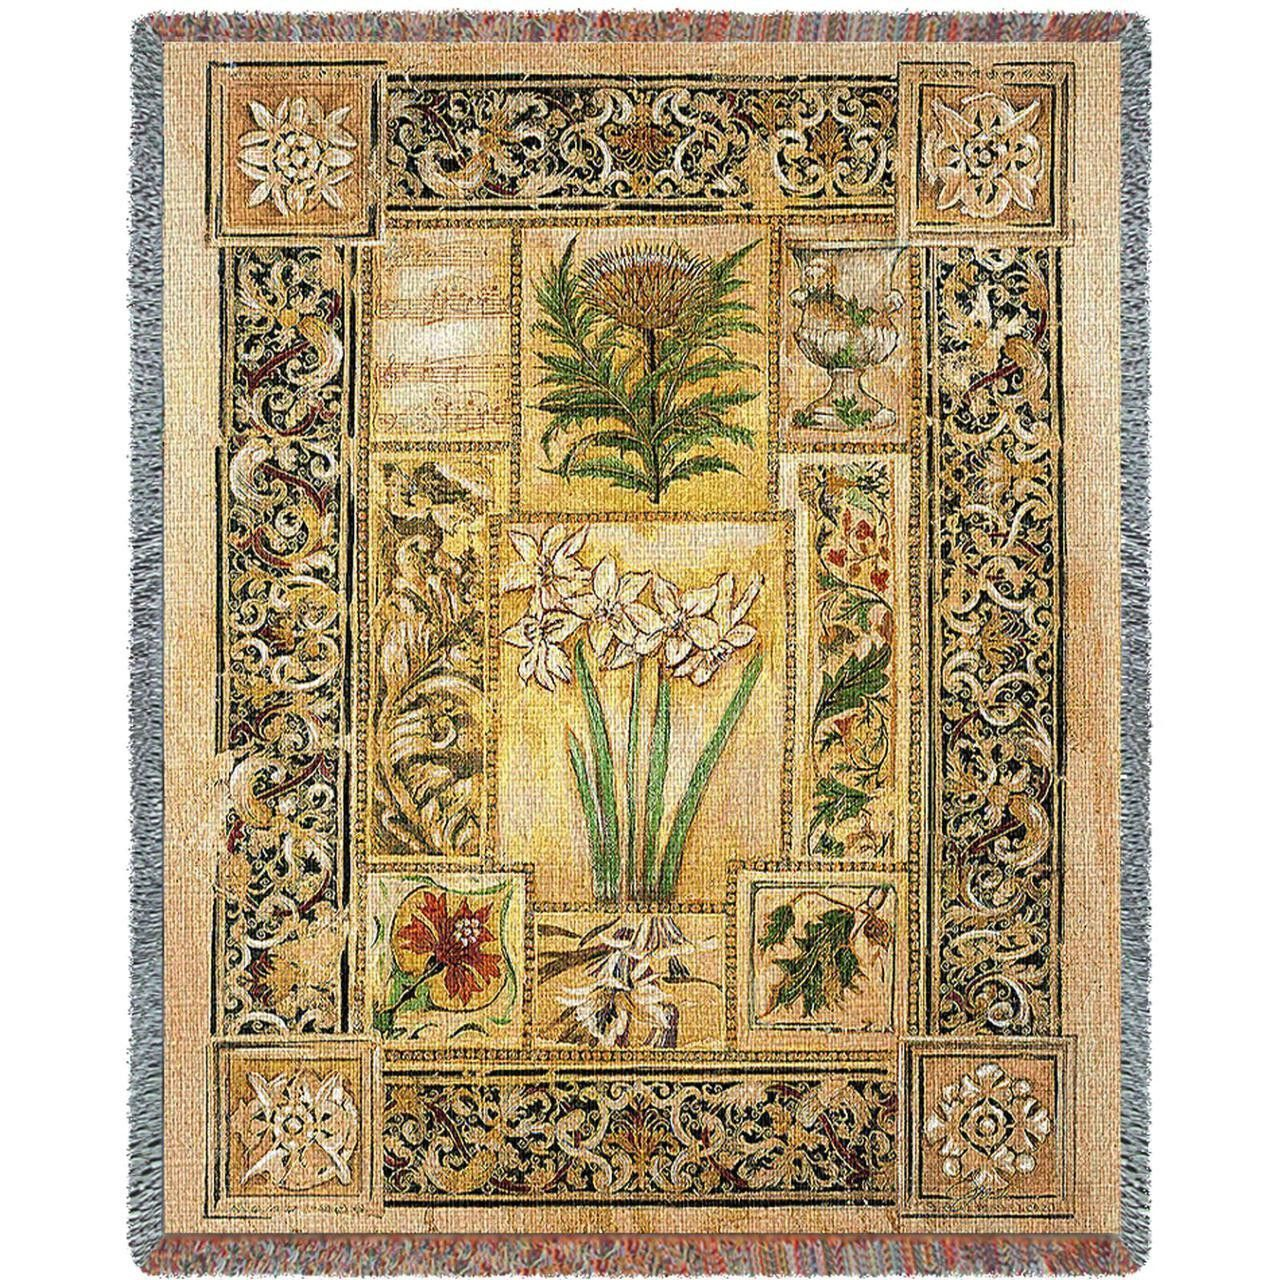 Music In The Garden Art Tapestry Throw | Garden art, Tapestry and ...